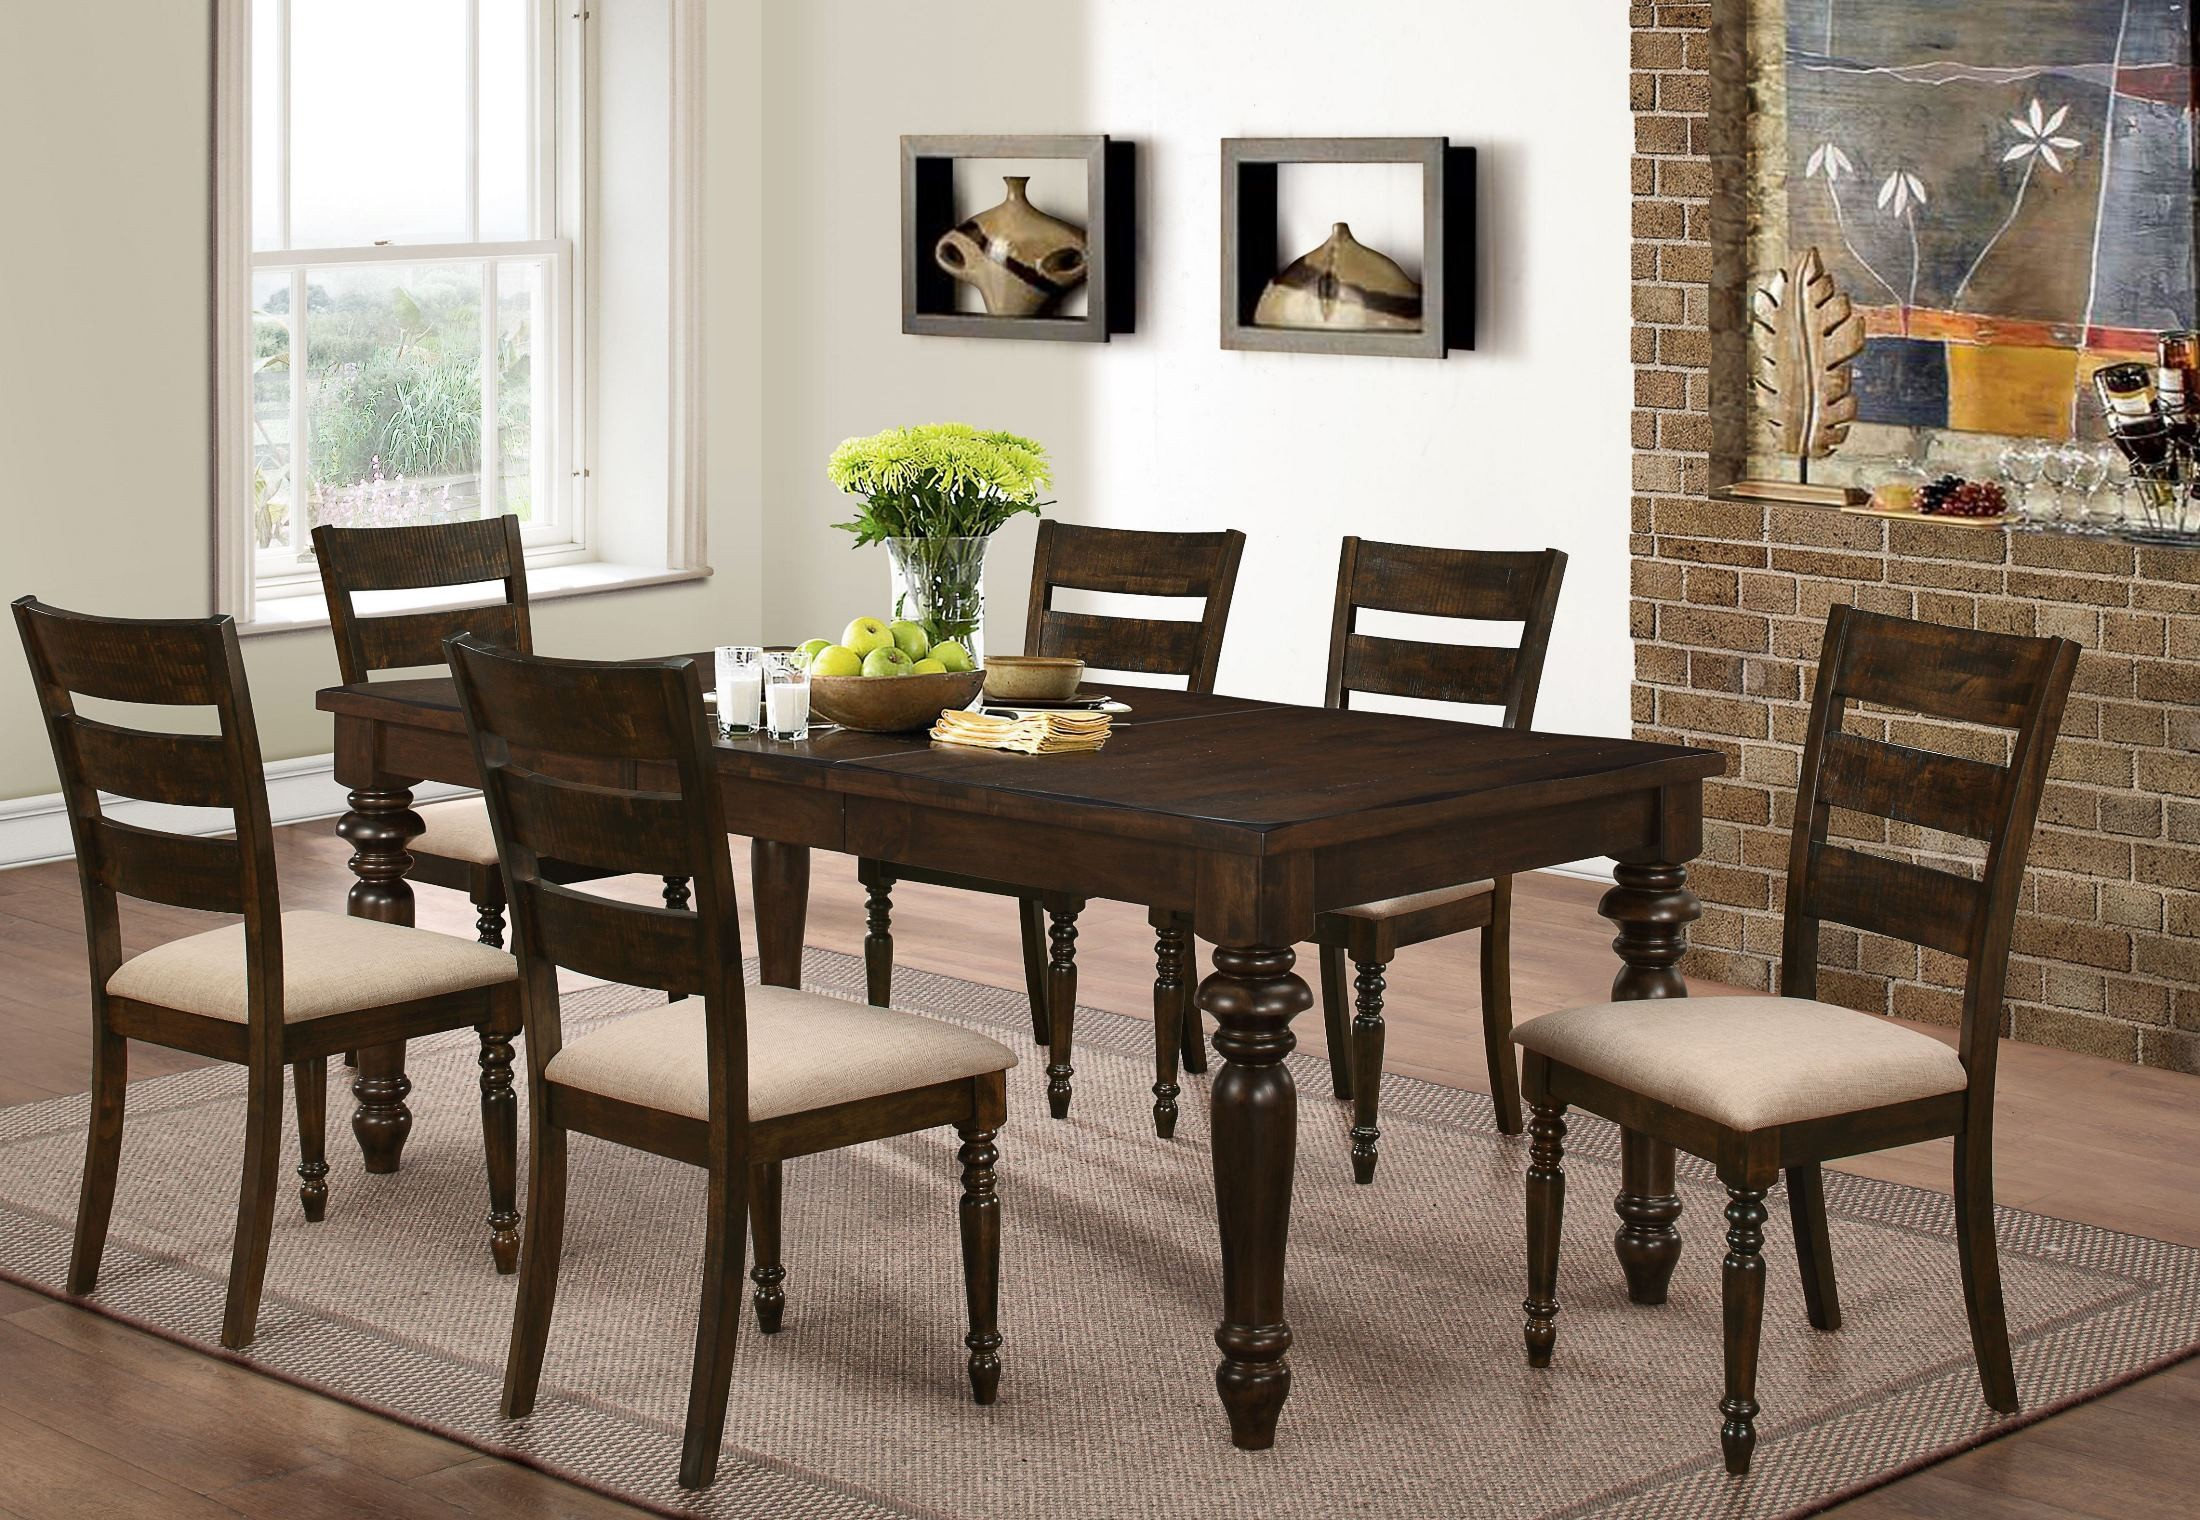 Annandale antique tobacco dining room set from new classic for Antique dining room sets